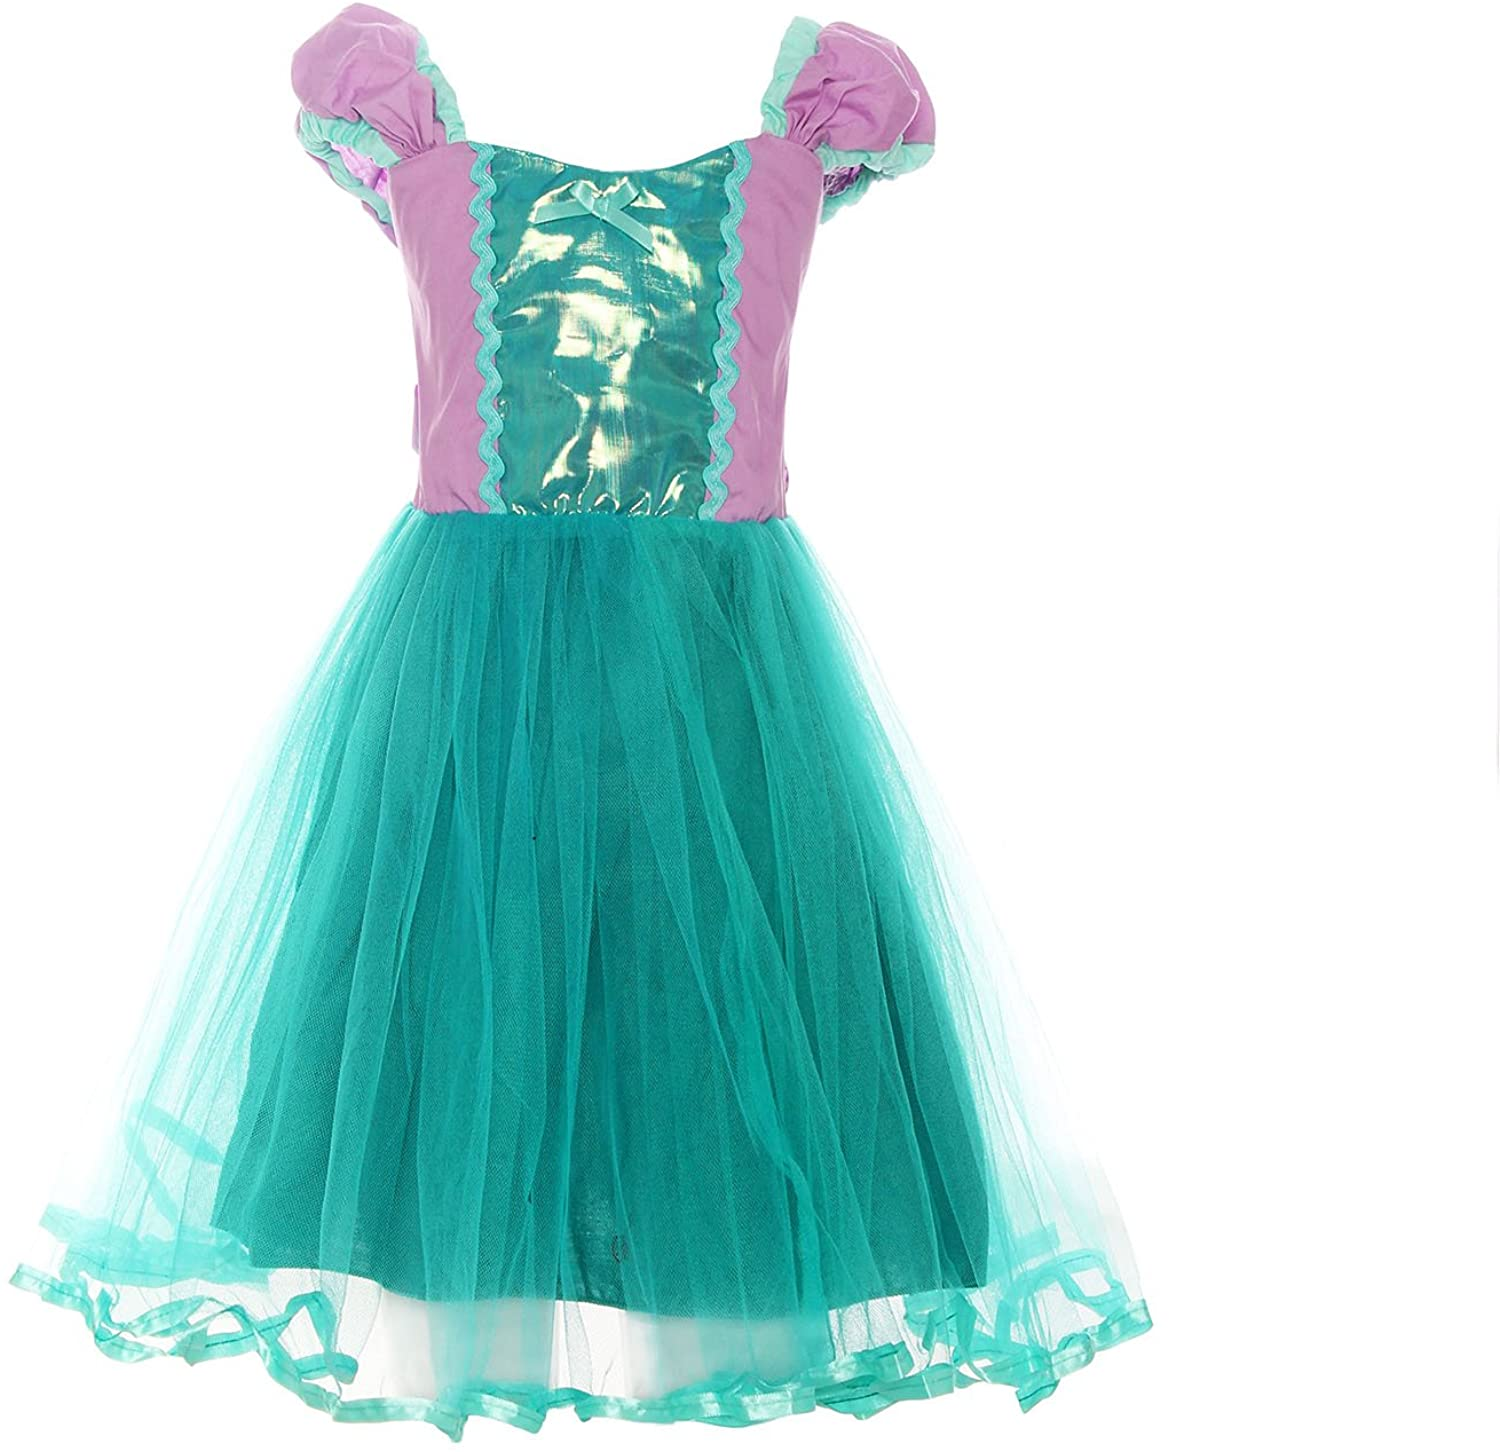 ReliBeauty Little Girls Mermaid Cosplay Dress Short Sleeve Costume, 3T